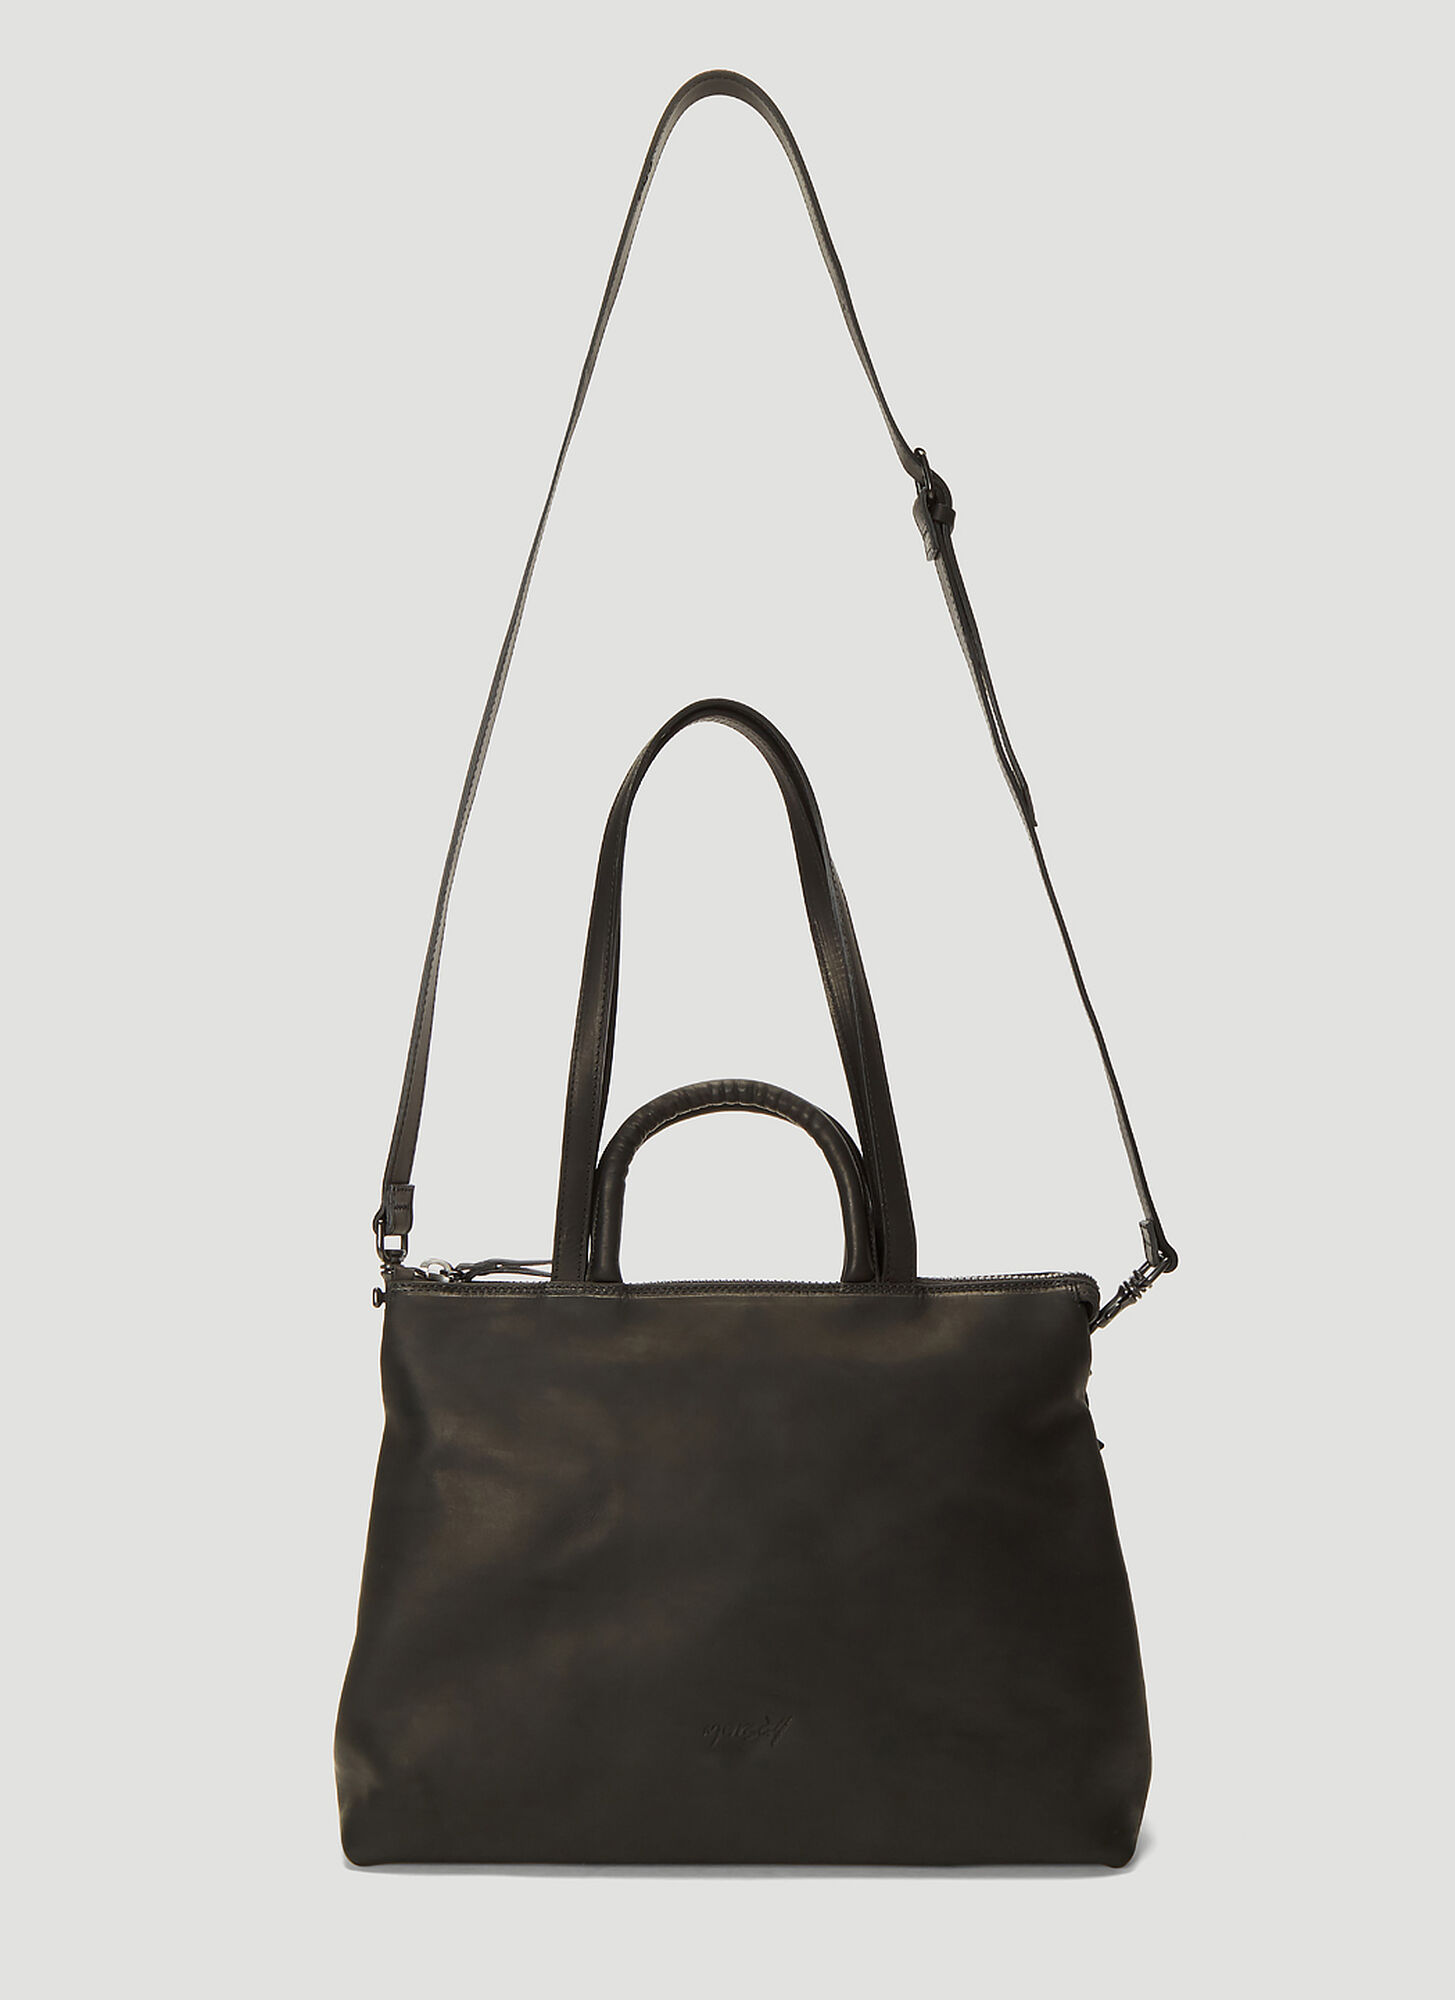 Marsell Dritta Handbag in Black